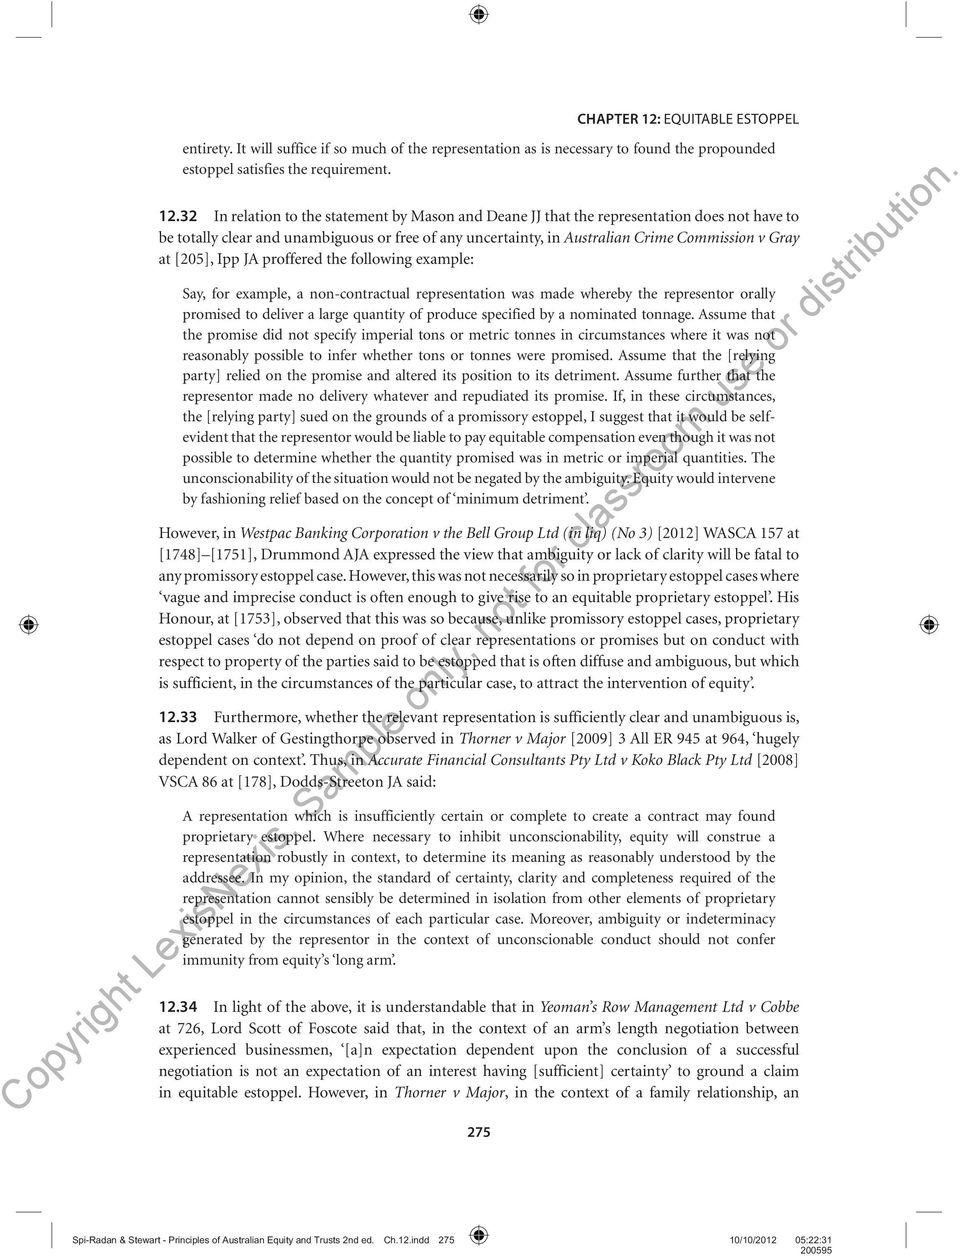 """essay equitable estoppel contracts Free essay: """"in thorner –v- major, the house of lords confirmed that a claimant  seeking to establish a proprietary estoppel must prove three things: (1) that   the law of trust and equitable remedies', 13th edition, sweet and maxwell, page  78)  leading, as he hoped and expected, to a formal contract""""."""